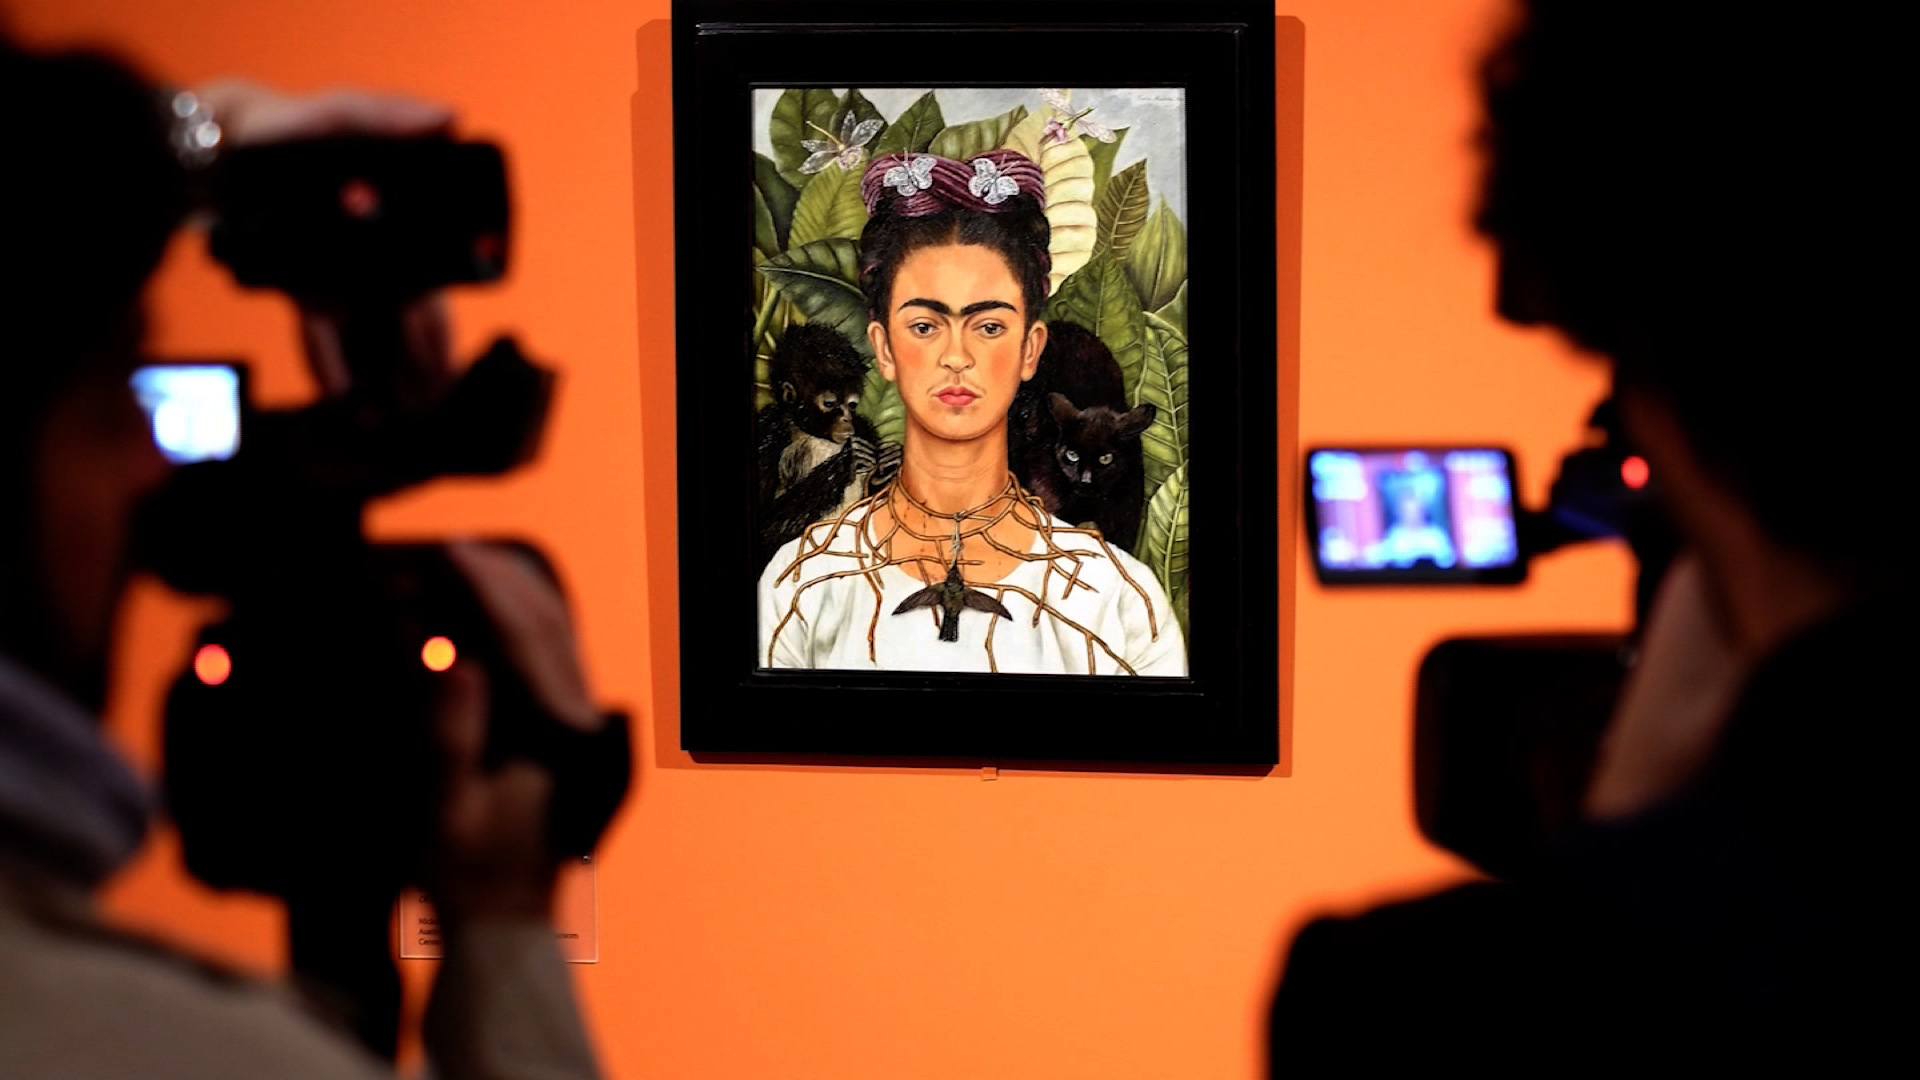 Two famous movies have been made on Frida Kahlo's life.